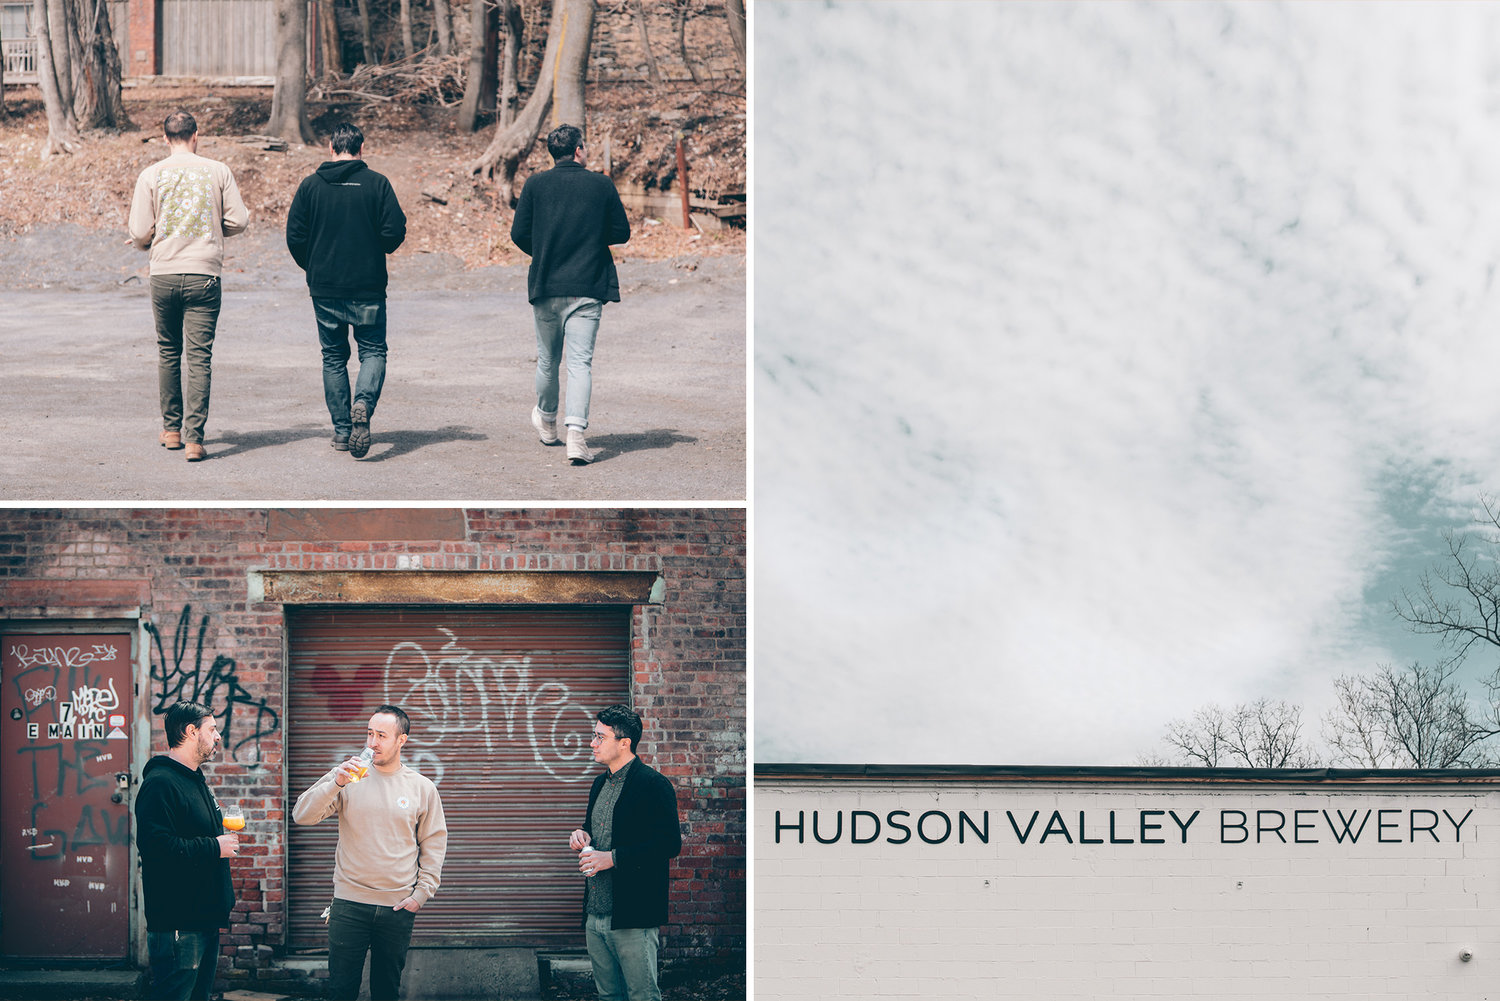 Follow the River North — Hudson Valley Brewery in Beacon, NY